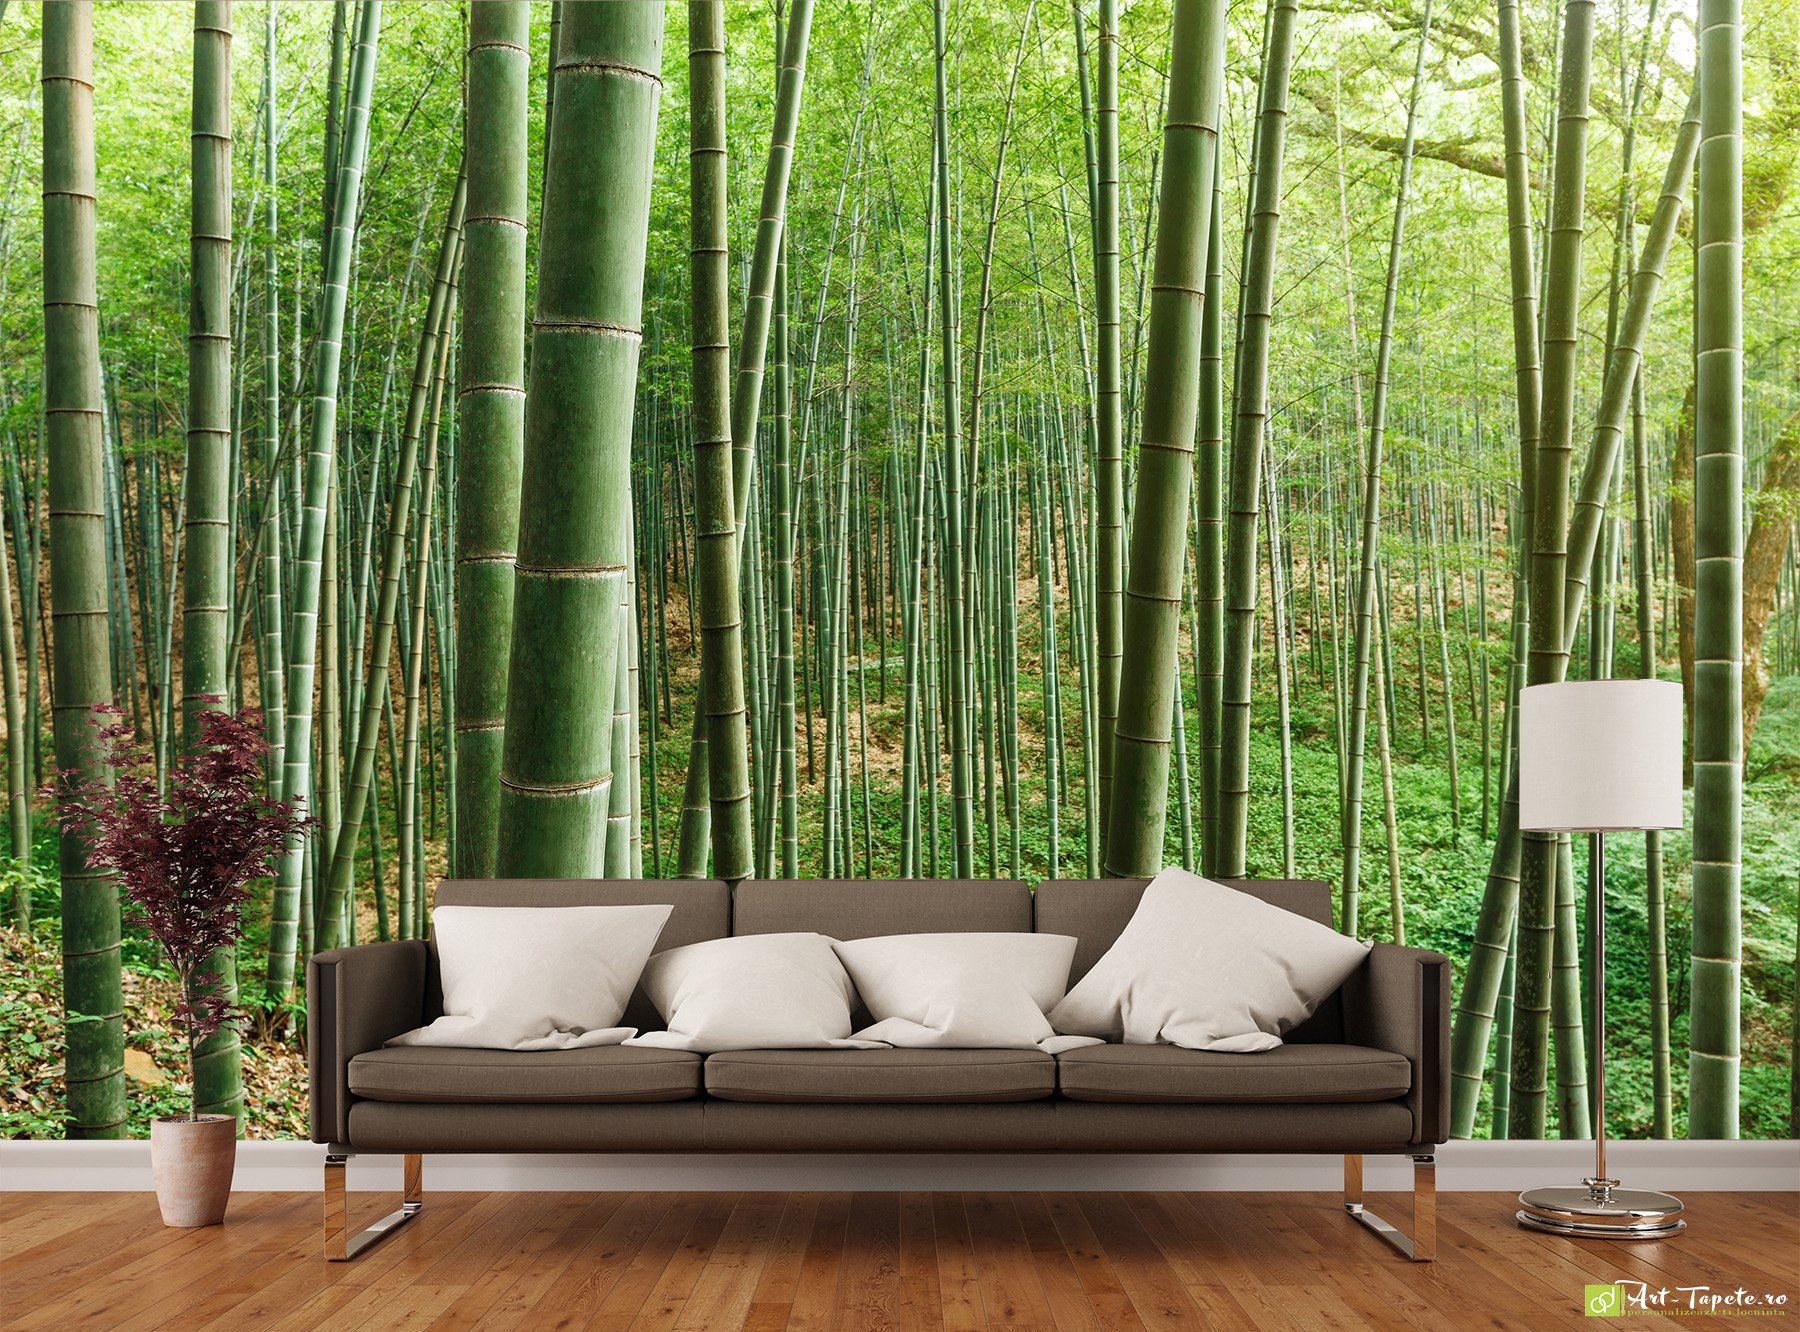 Nature wallpaper wall murals bamboo forest 8 for Bamboo forest mural wallpaper